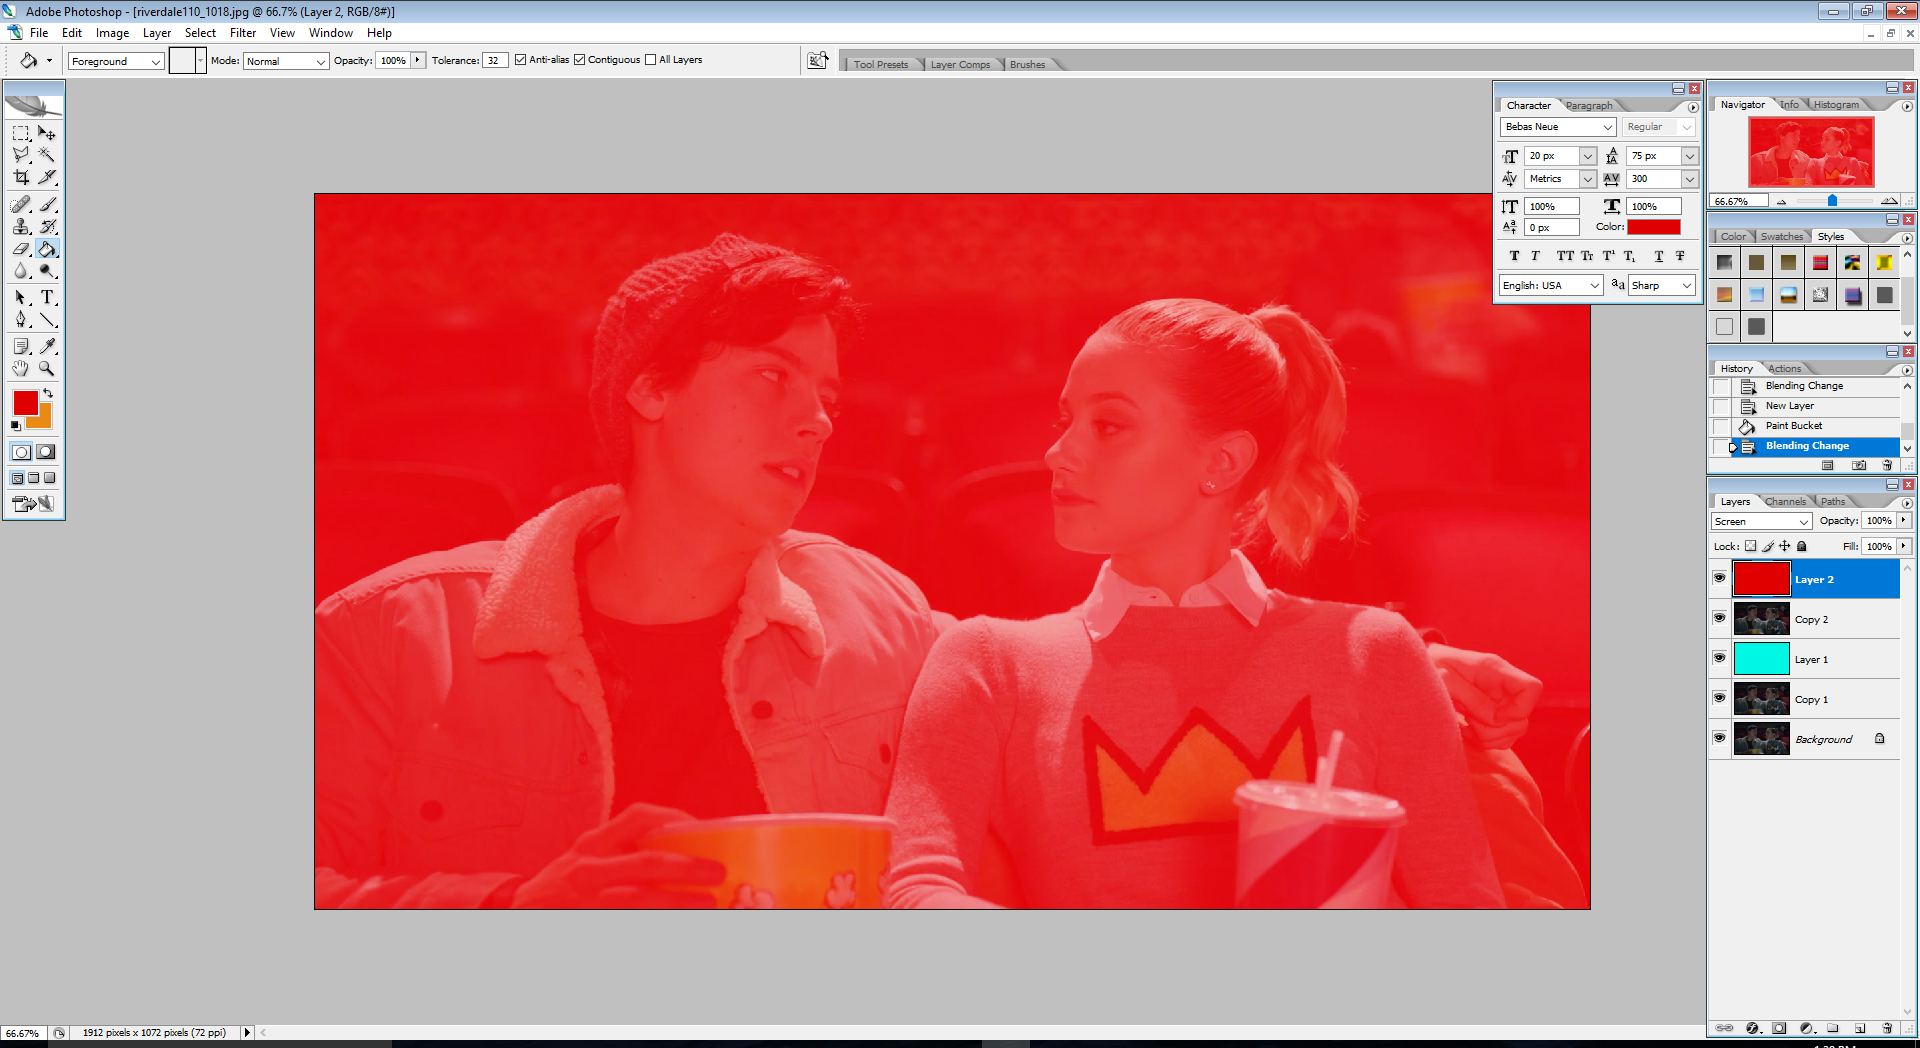 create a new layer above Copy 2; fill it with a bright red (preferably #e10000); set the blending mode to Screen